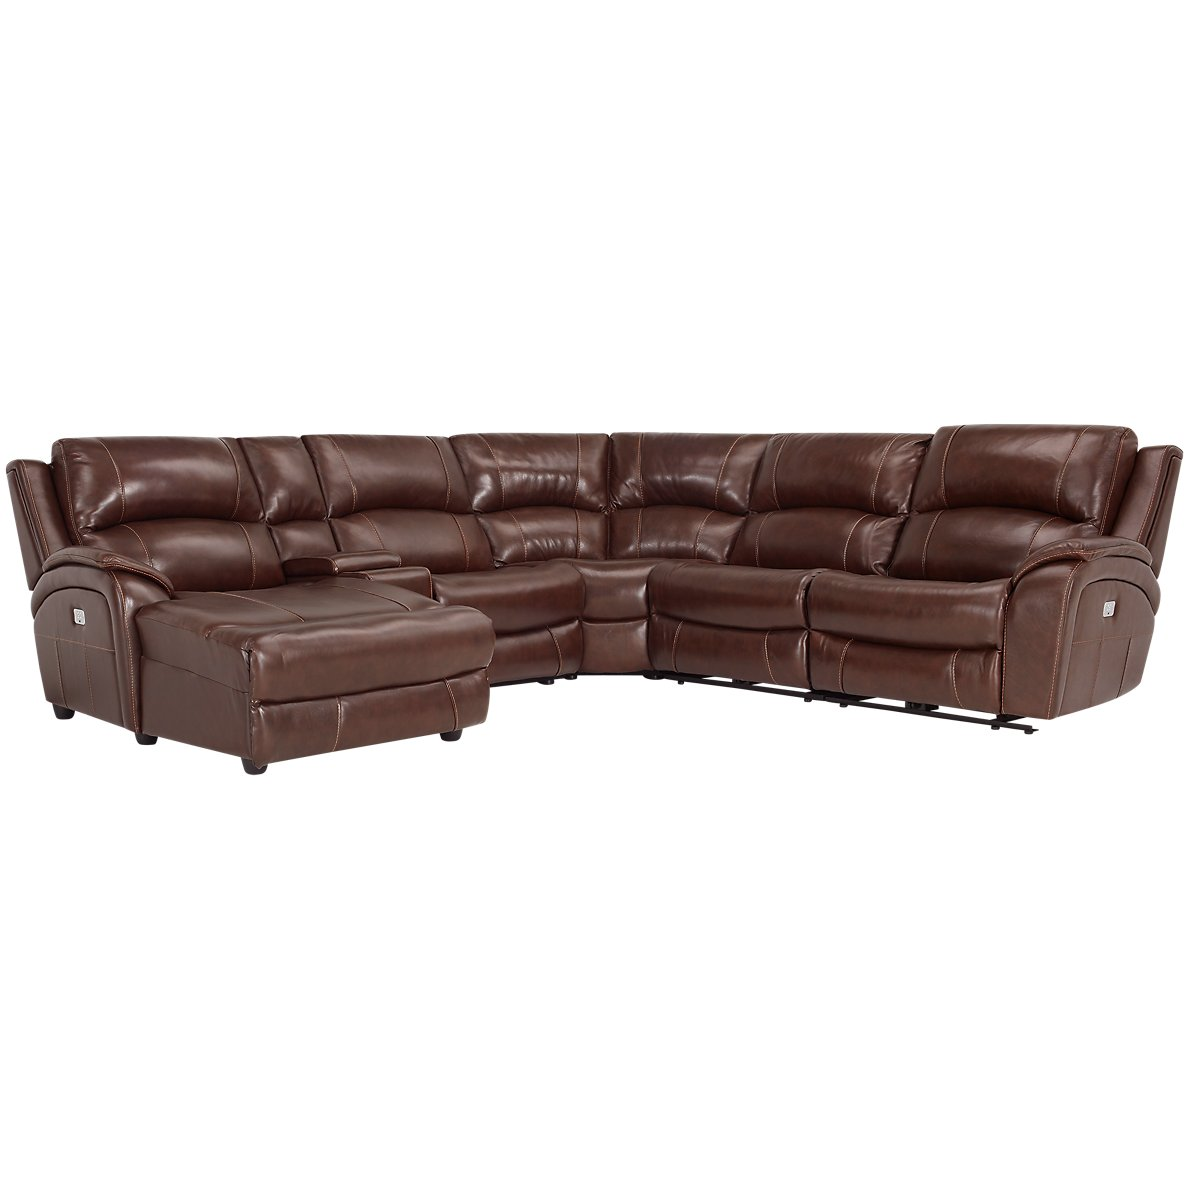 City furniture memphis medium brown leather left chaise for Brown leather sectional with chaise